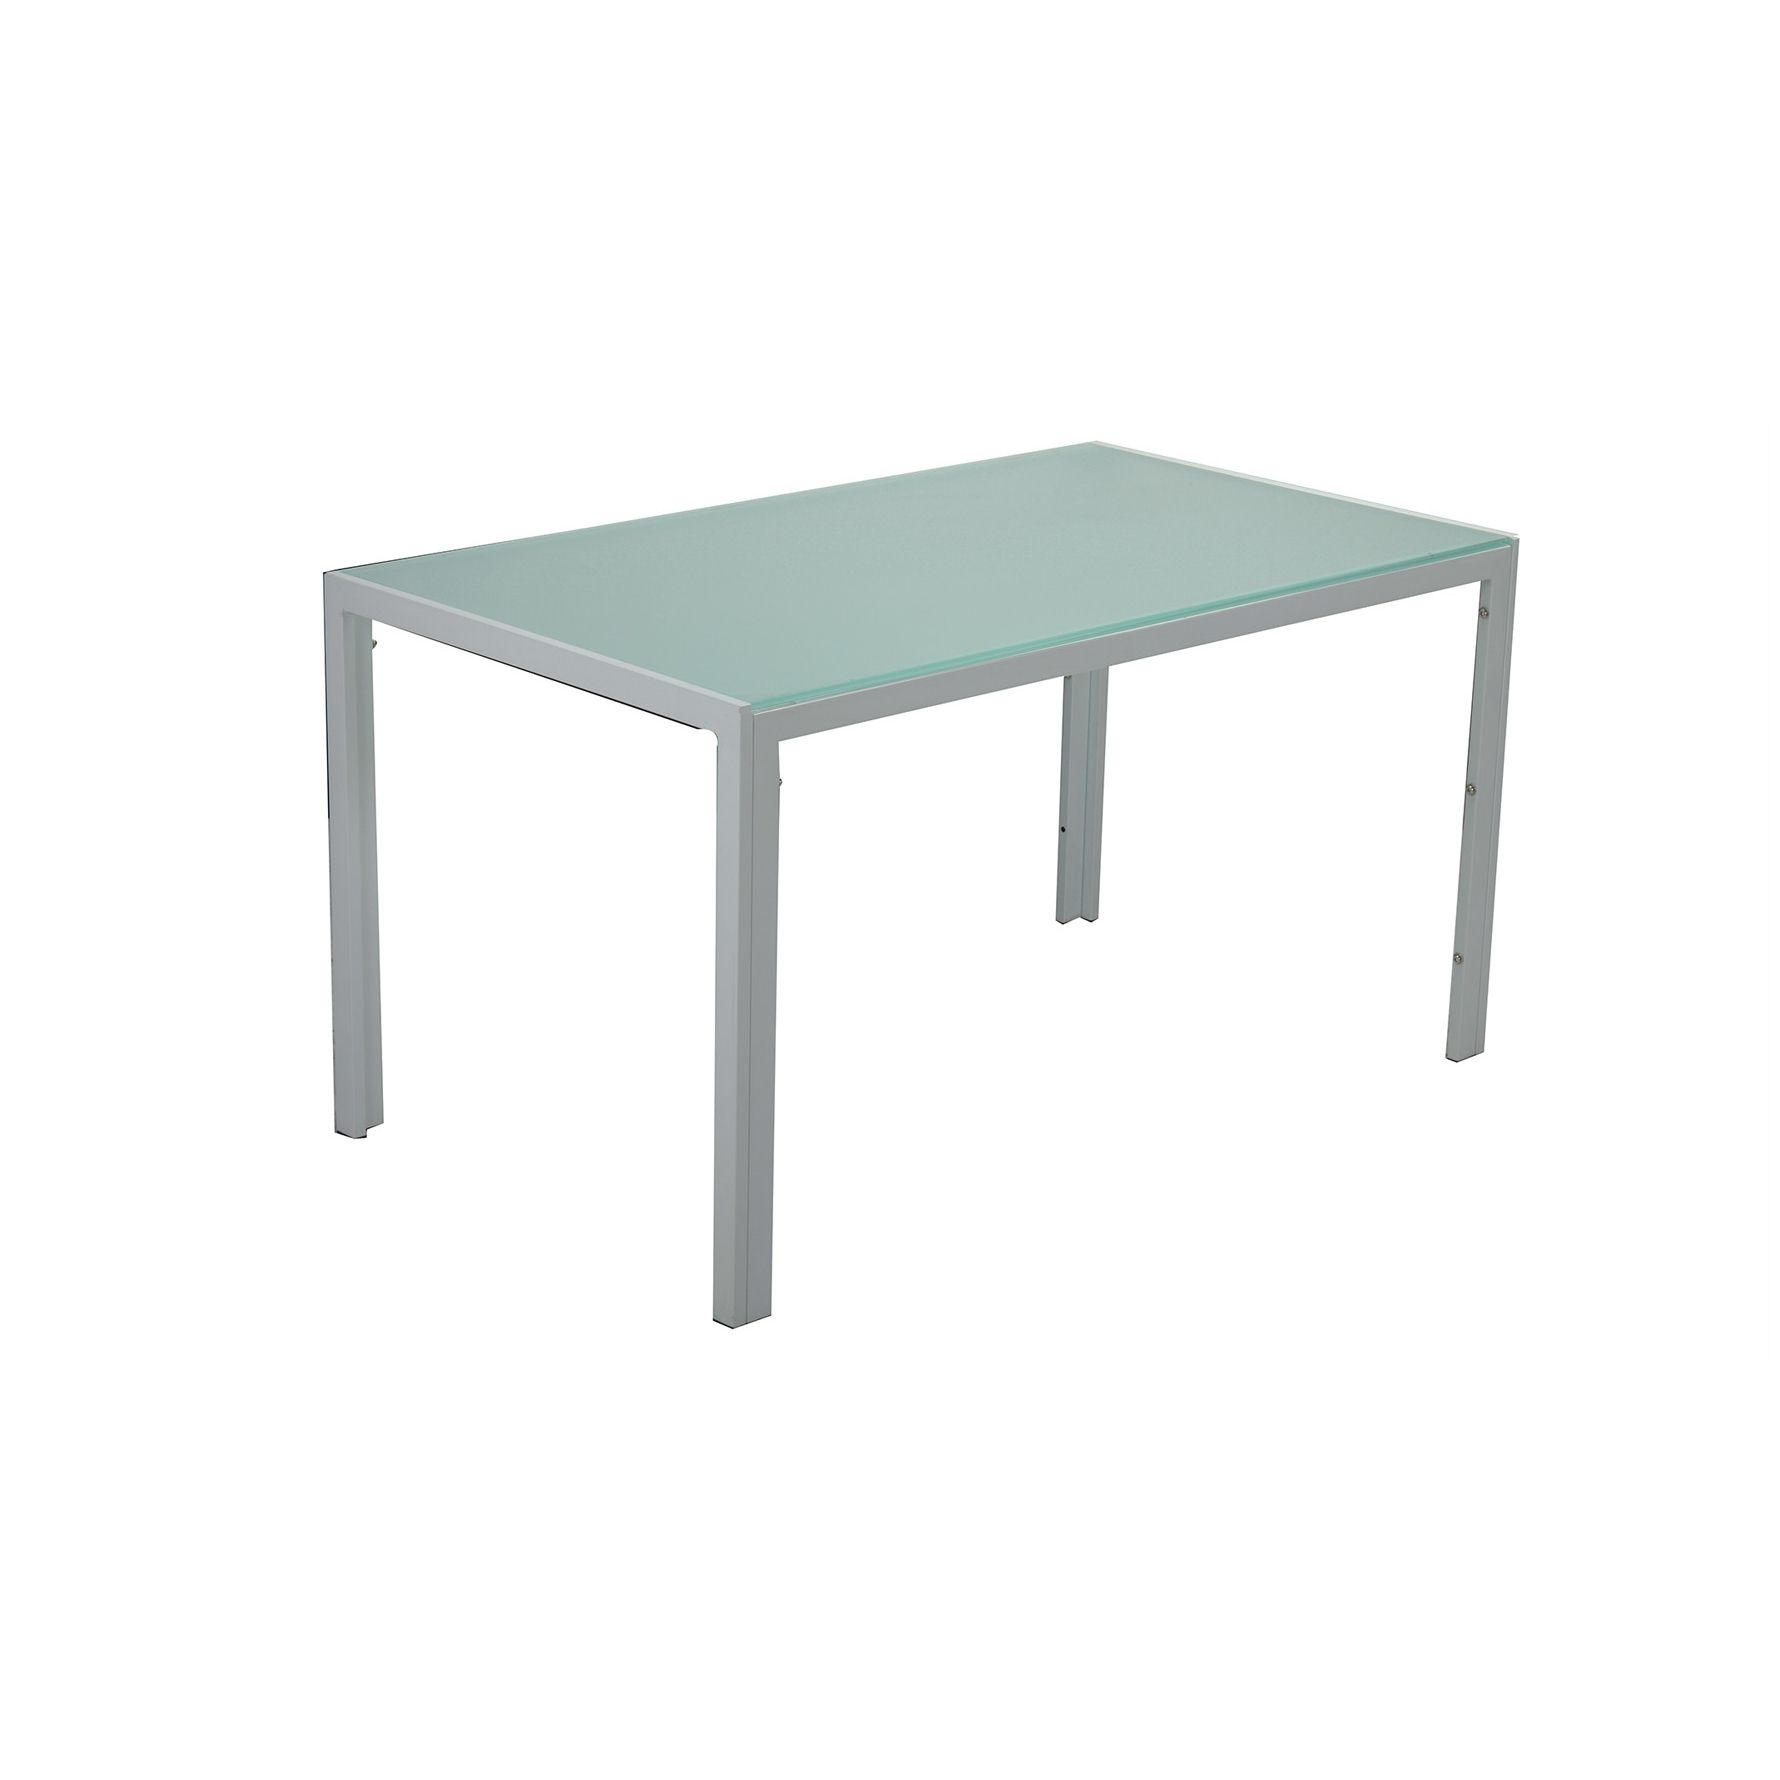 Table a manger verre extensible table a manger en verre for Table en verre extensible design